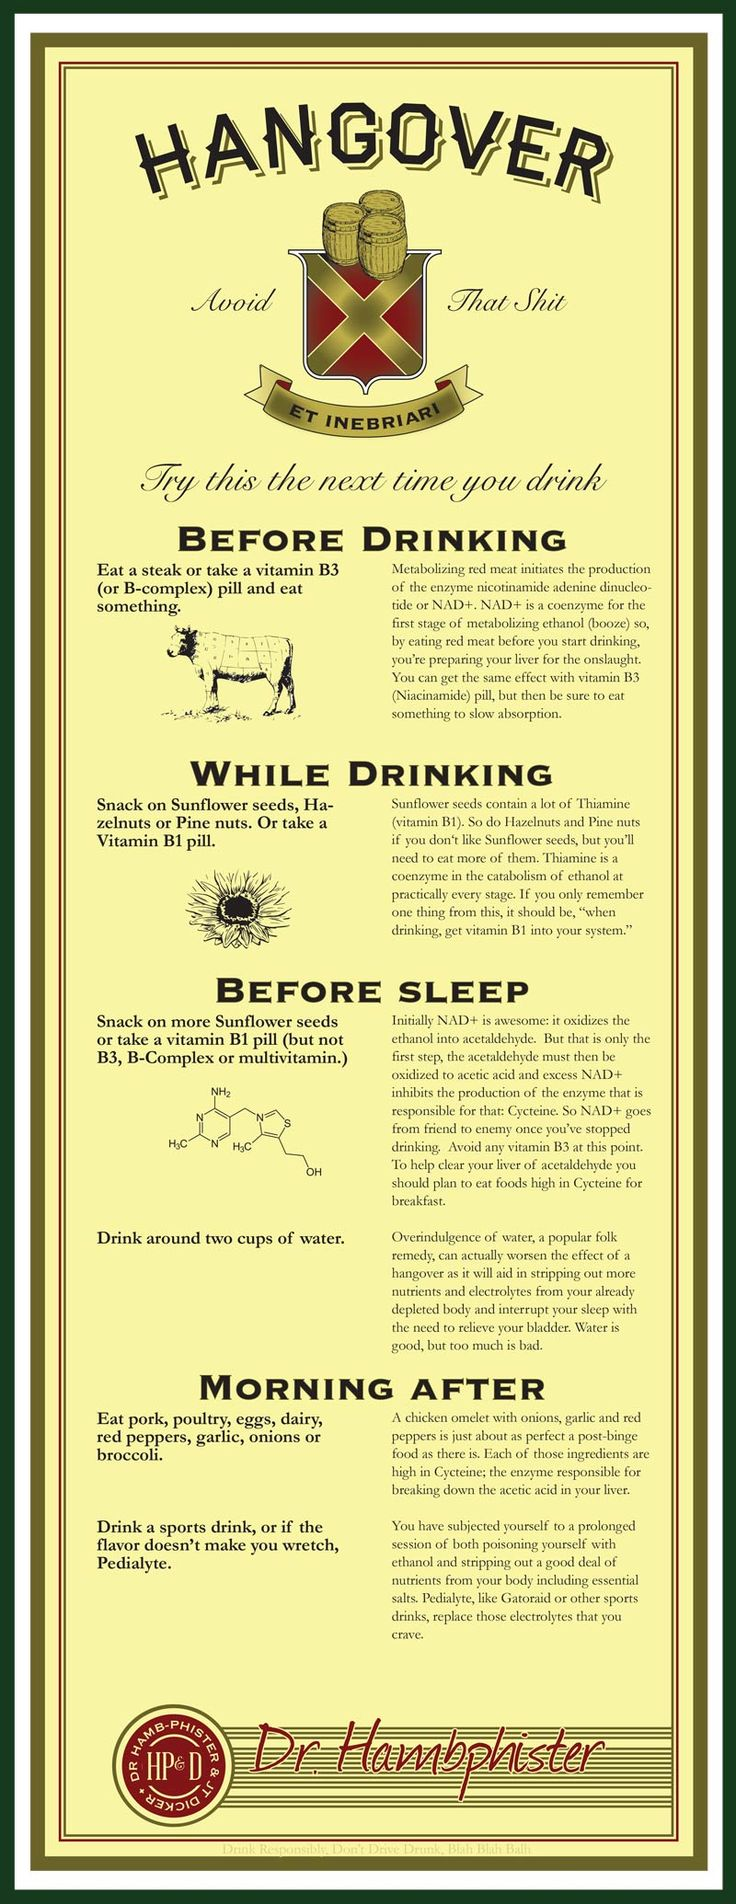 How To Avoid A Hangover [Pic] http://www.chaostrophic.com/